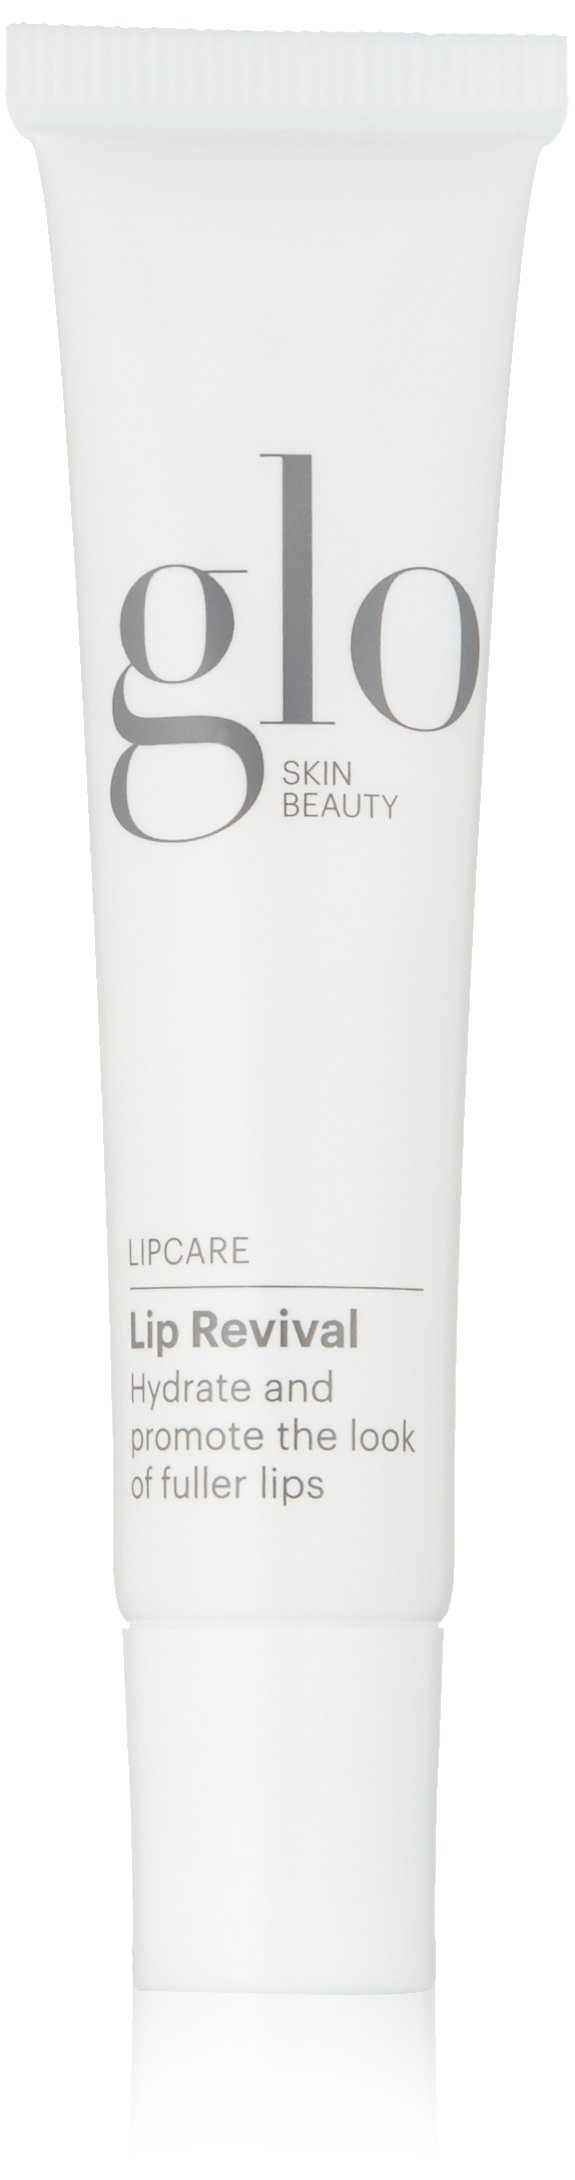 Glo Skin Beauty Lip Revival   Hydrating Lip Care   Targeted Lip Plumping Cream for Fuller Lips by Glo Skin Beauty